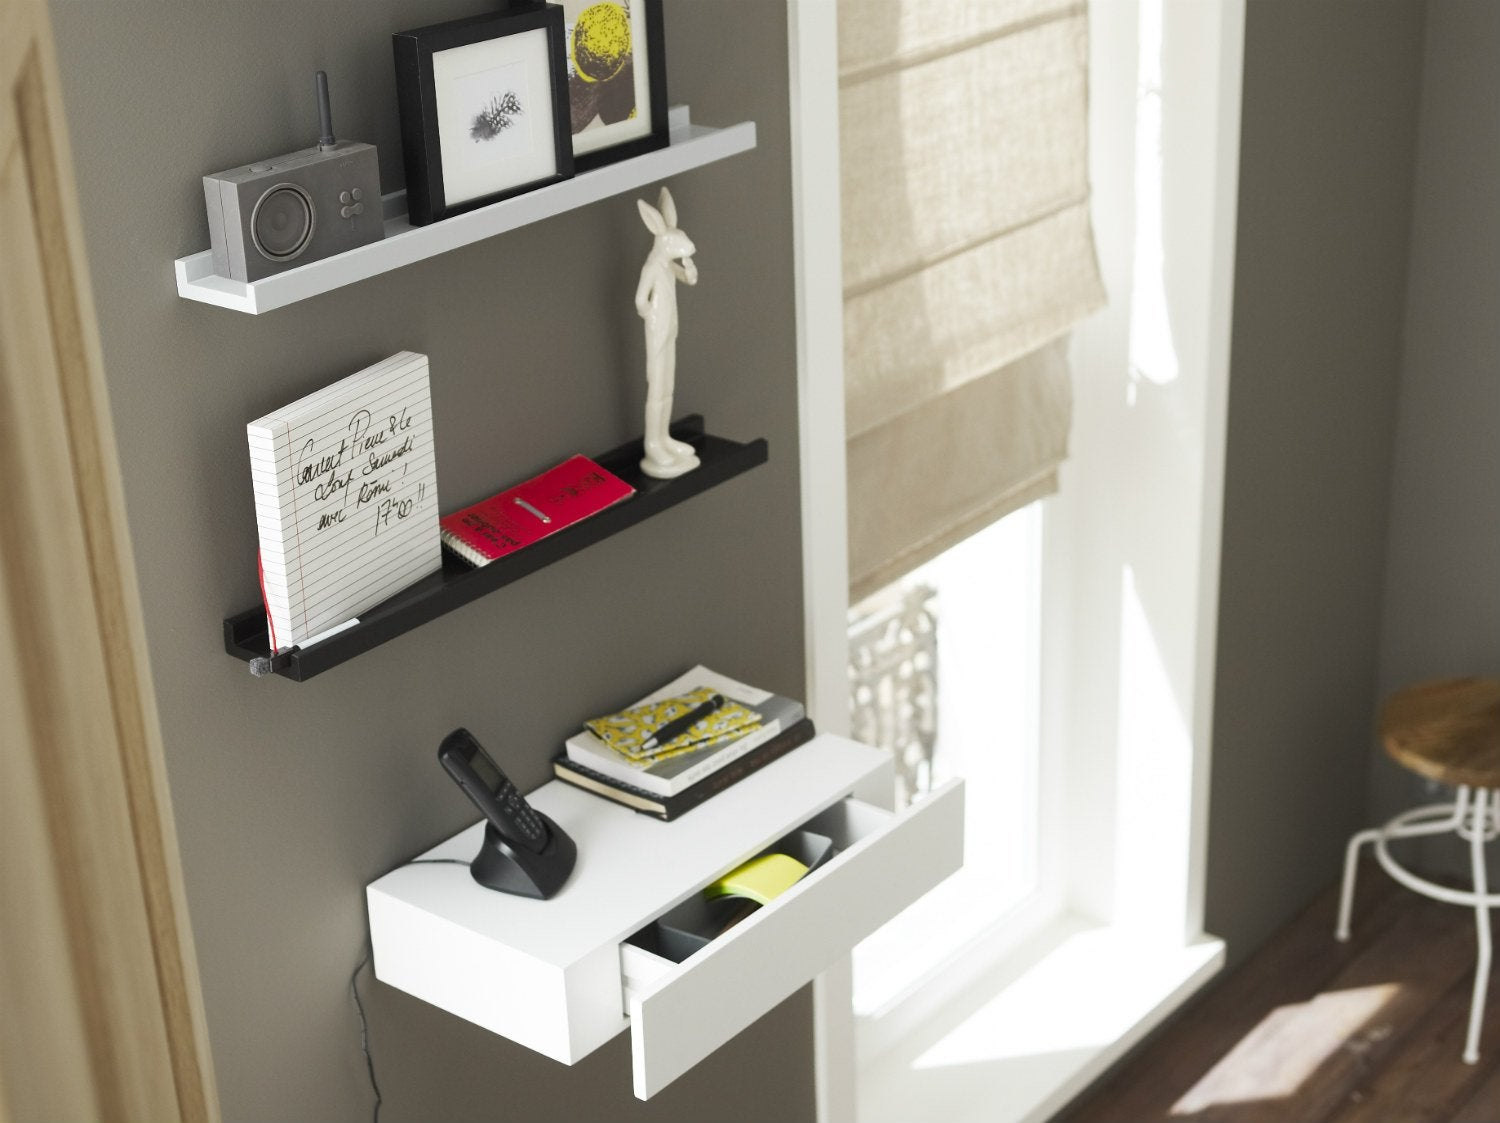 comment poser une tablette avec une fixation invisible. Black Bedroom Furniture Sets. Home Design Ideas